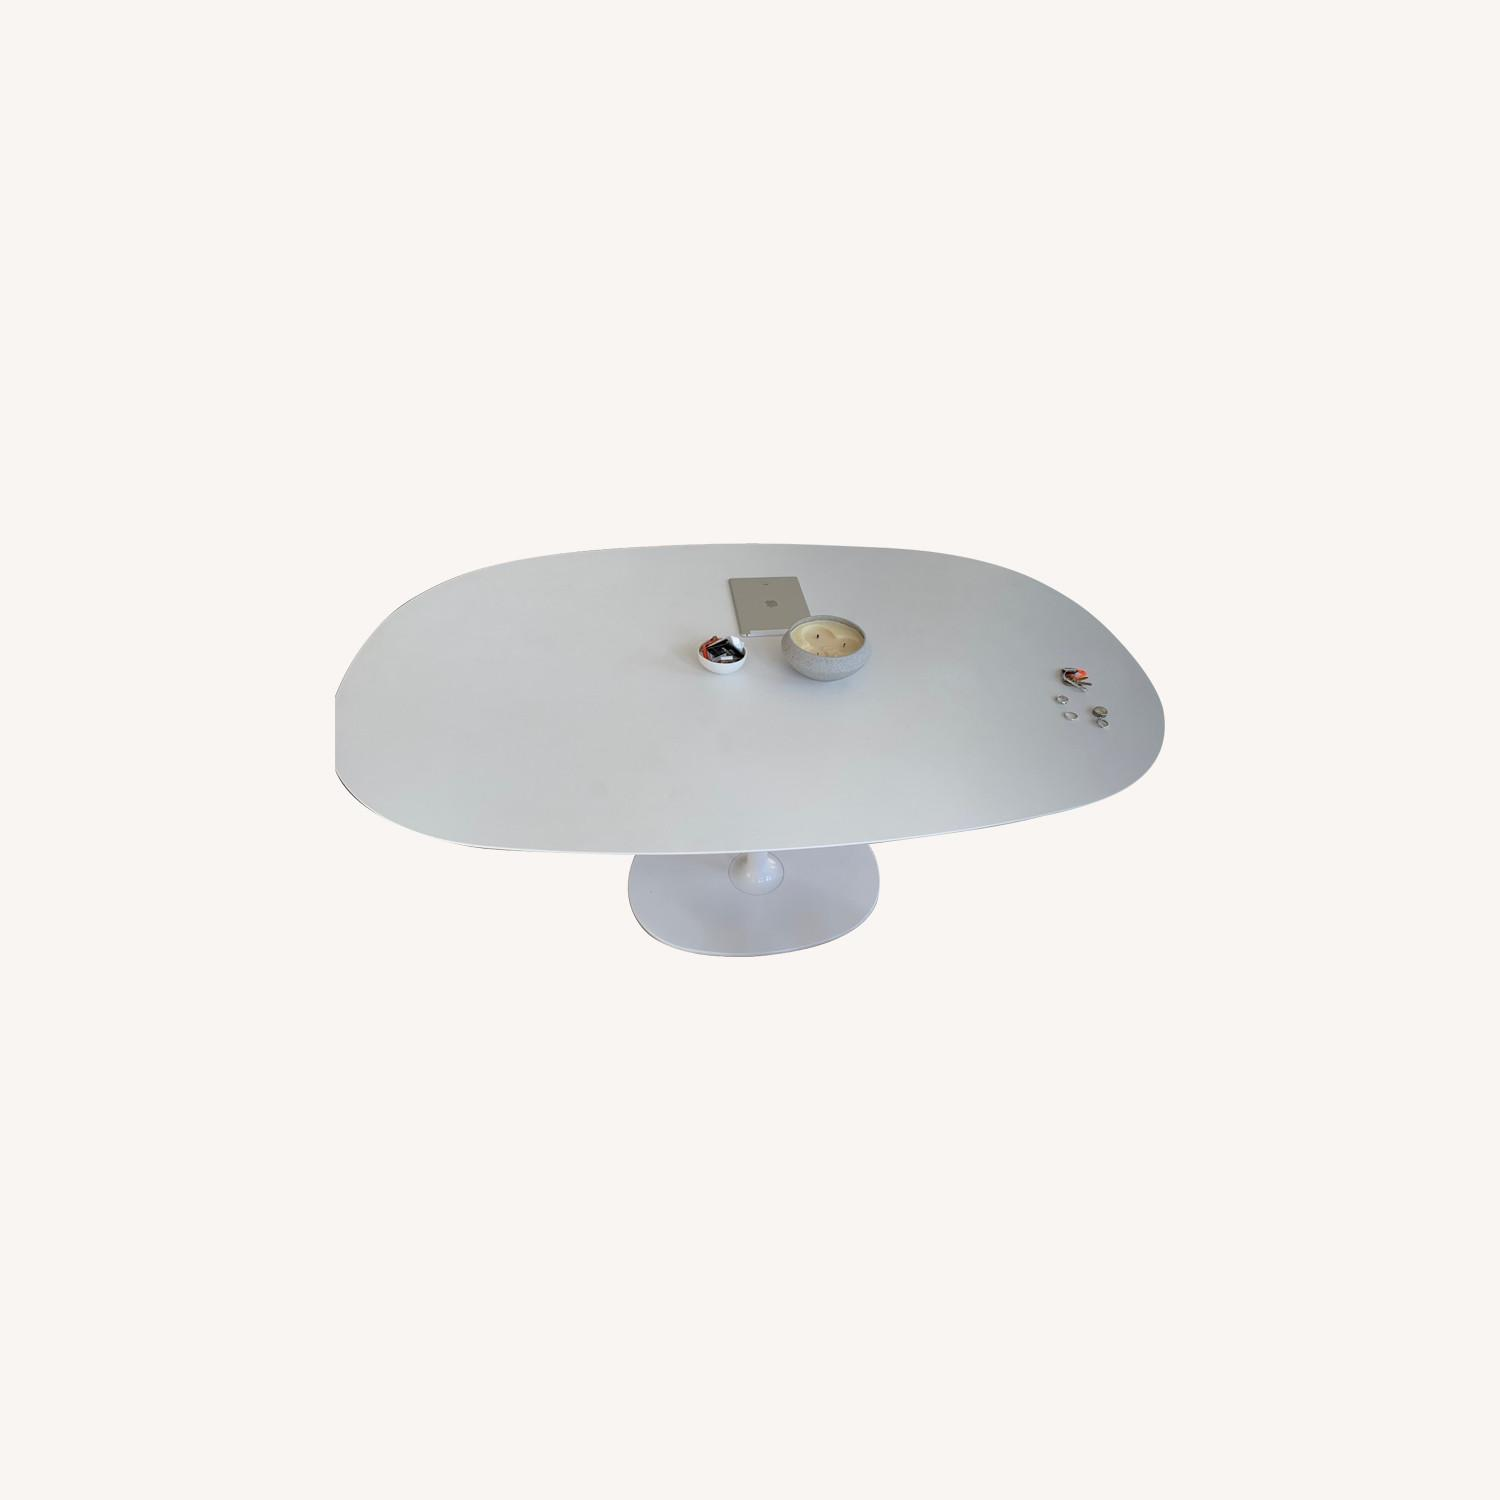 Design With In Reach Saarinen Dining Table - image-0